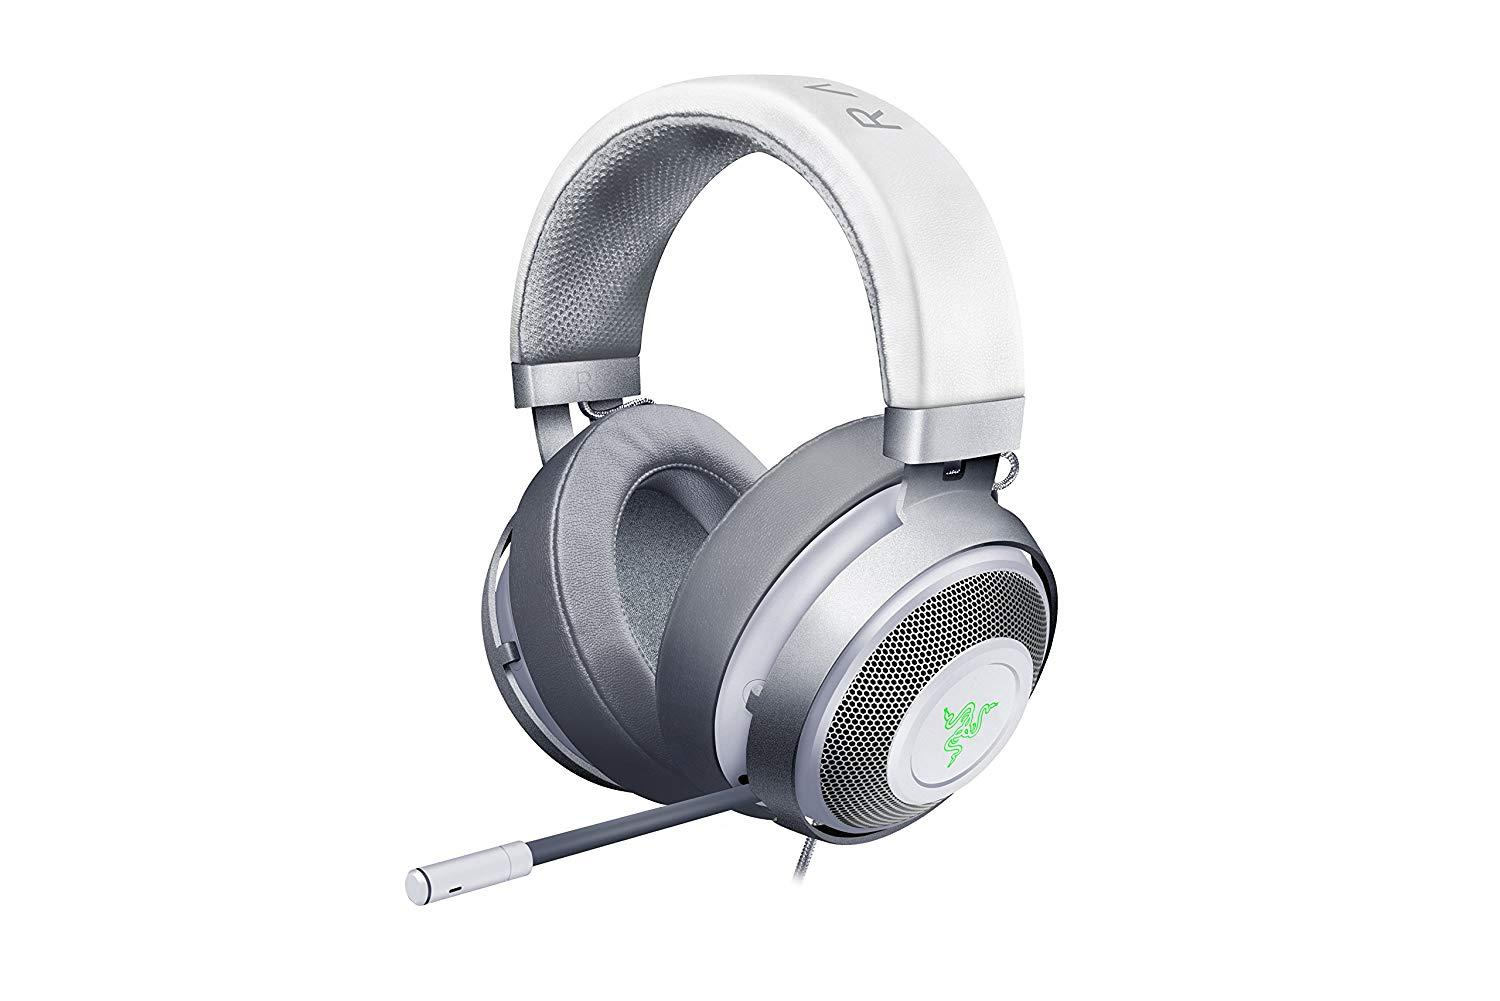 Razer Kraken 7 1 V2 Mercury White Discord Certified Razer Chroma USB Port  (OVAL earcups) Over-The-Ear Gaming Headsets